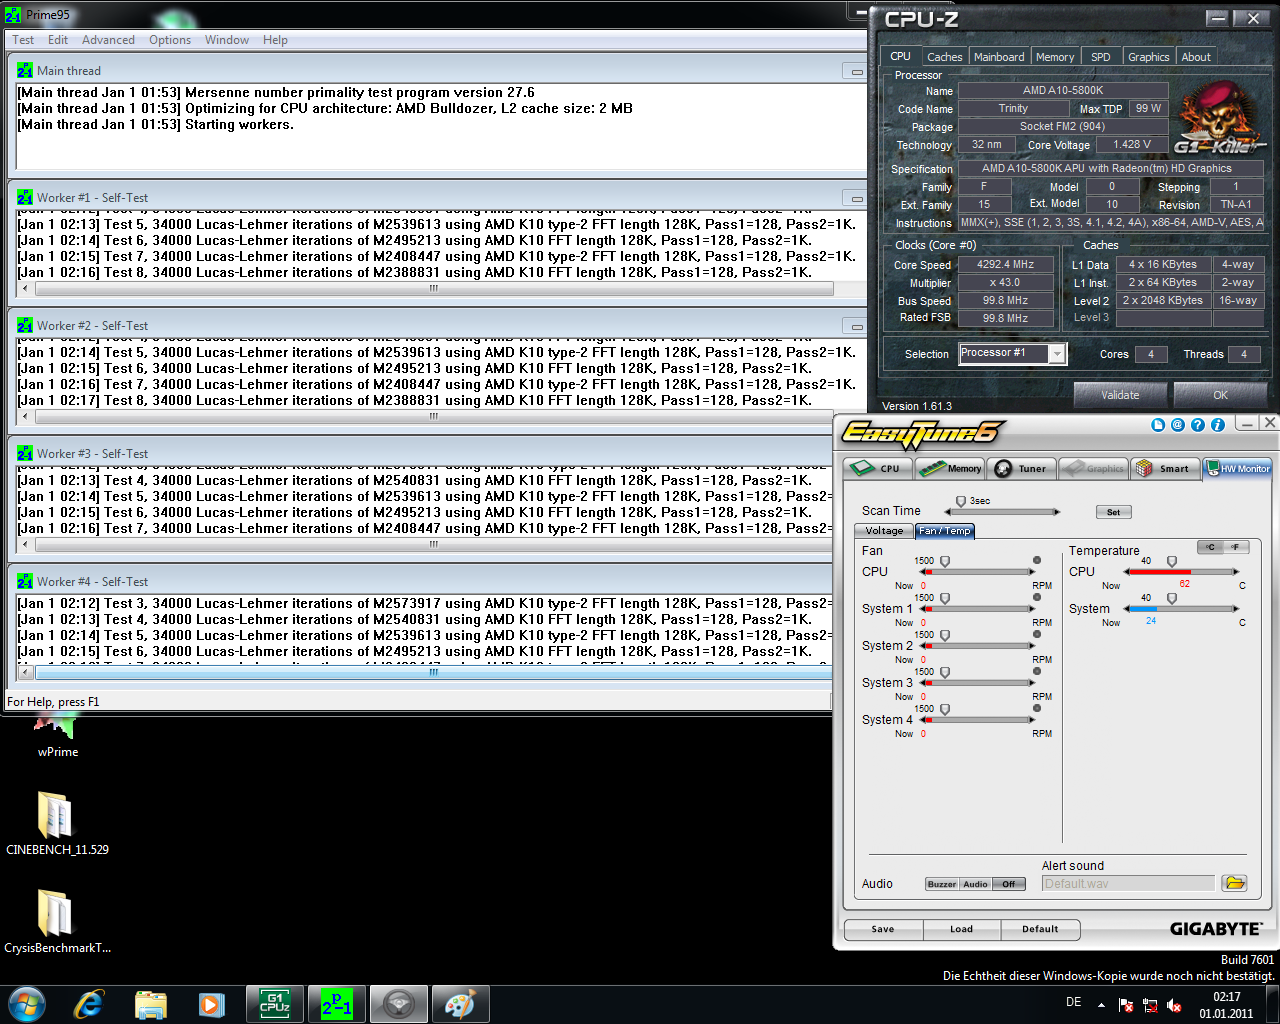 [OC-Guide] AMD Trinity - Unleash the power of A10-5800K on GIGABYTE F2A85X-UP4-4300.png